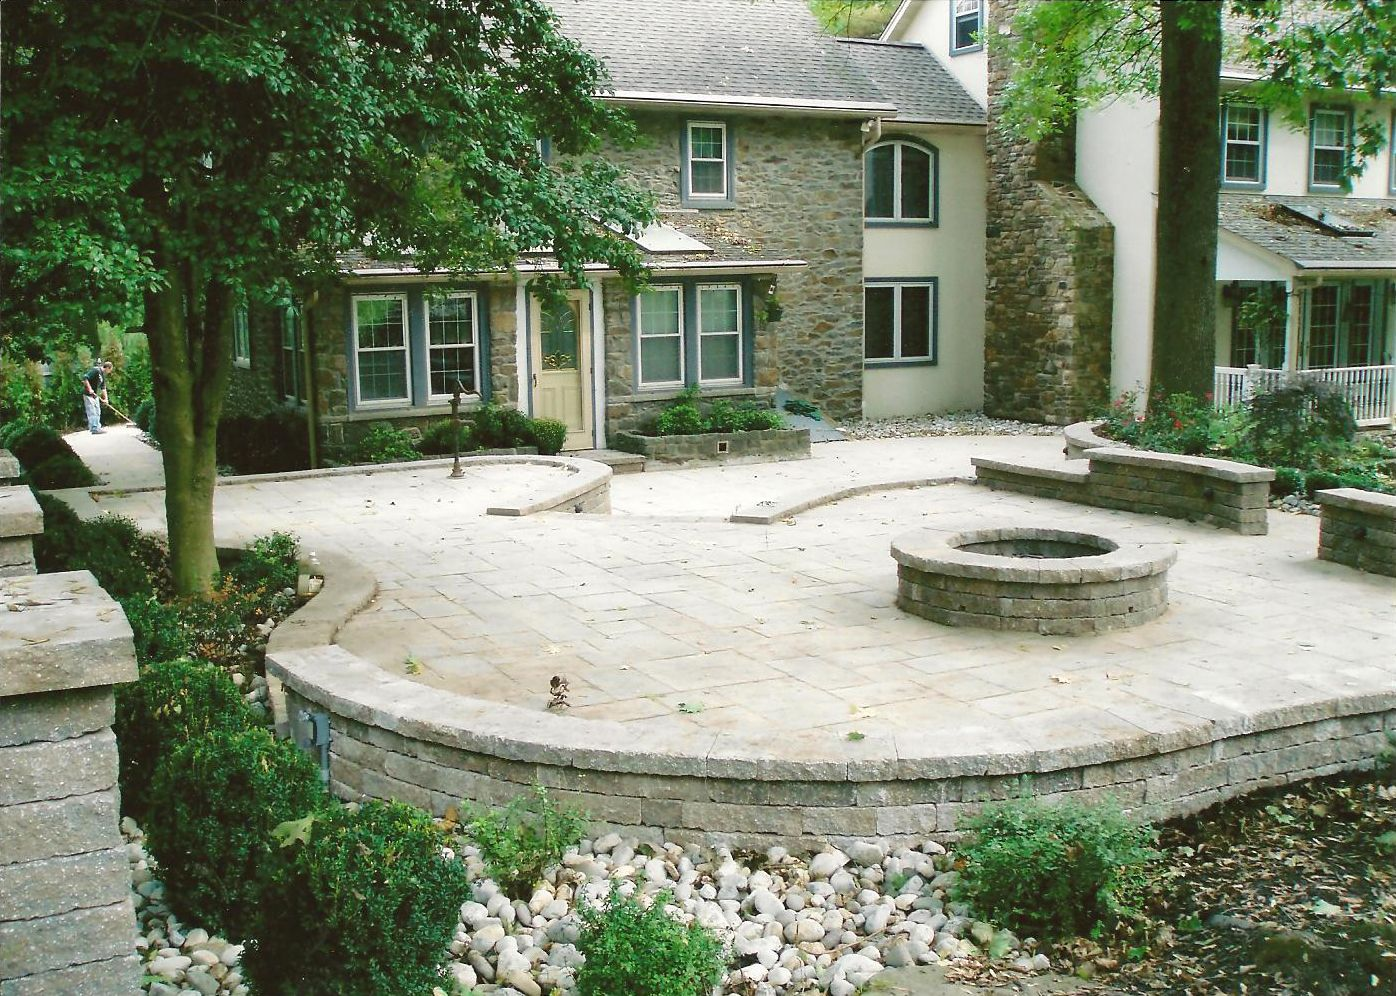 Hardscaping Ideas For Backyards rustic backyard patio inspiration come with low stacked stone firepit and rattan chairs with Hardscaping Ideas For Backyards Backyard Design